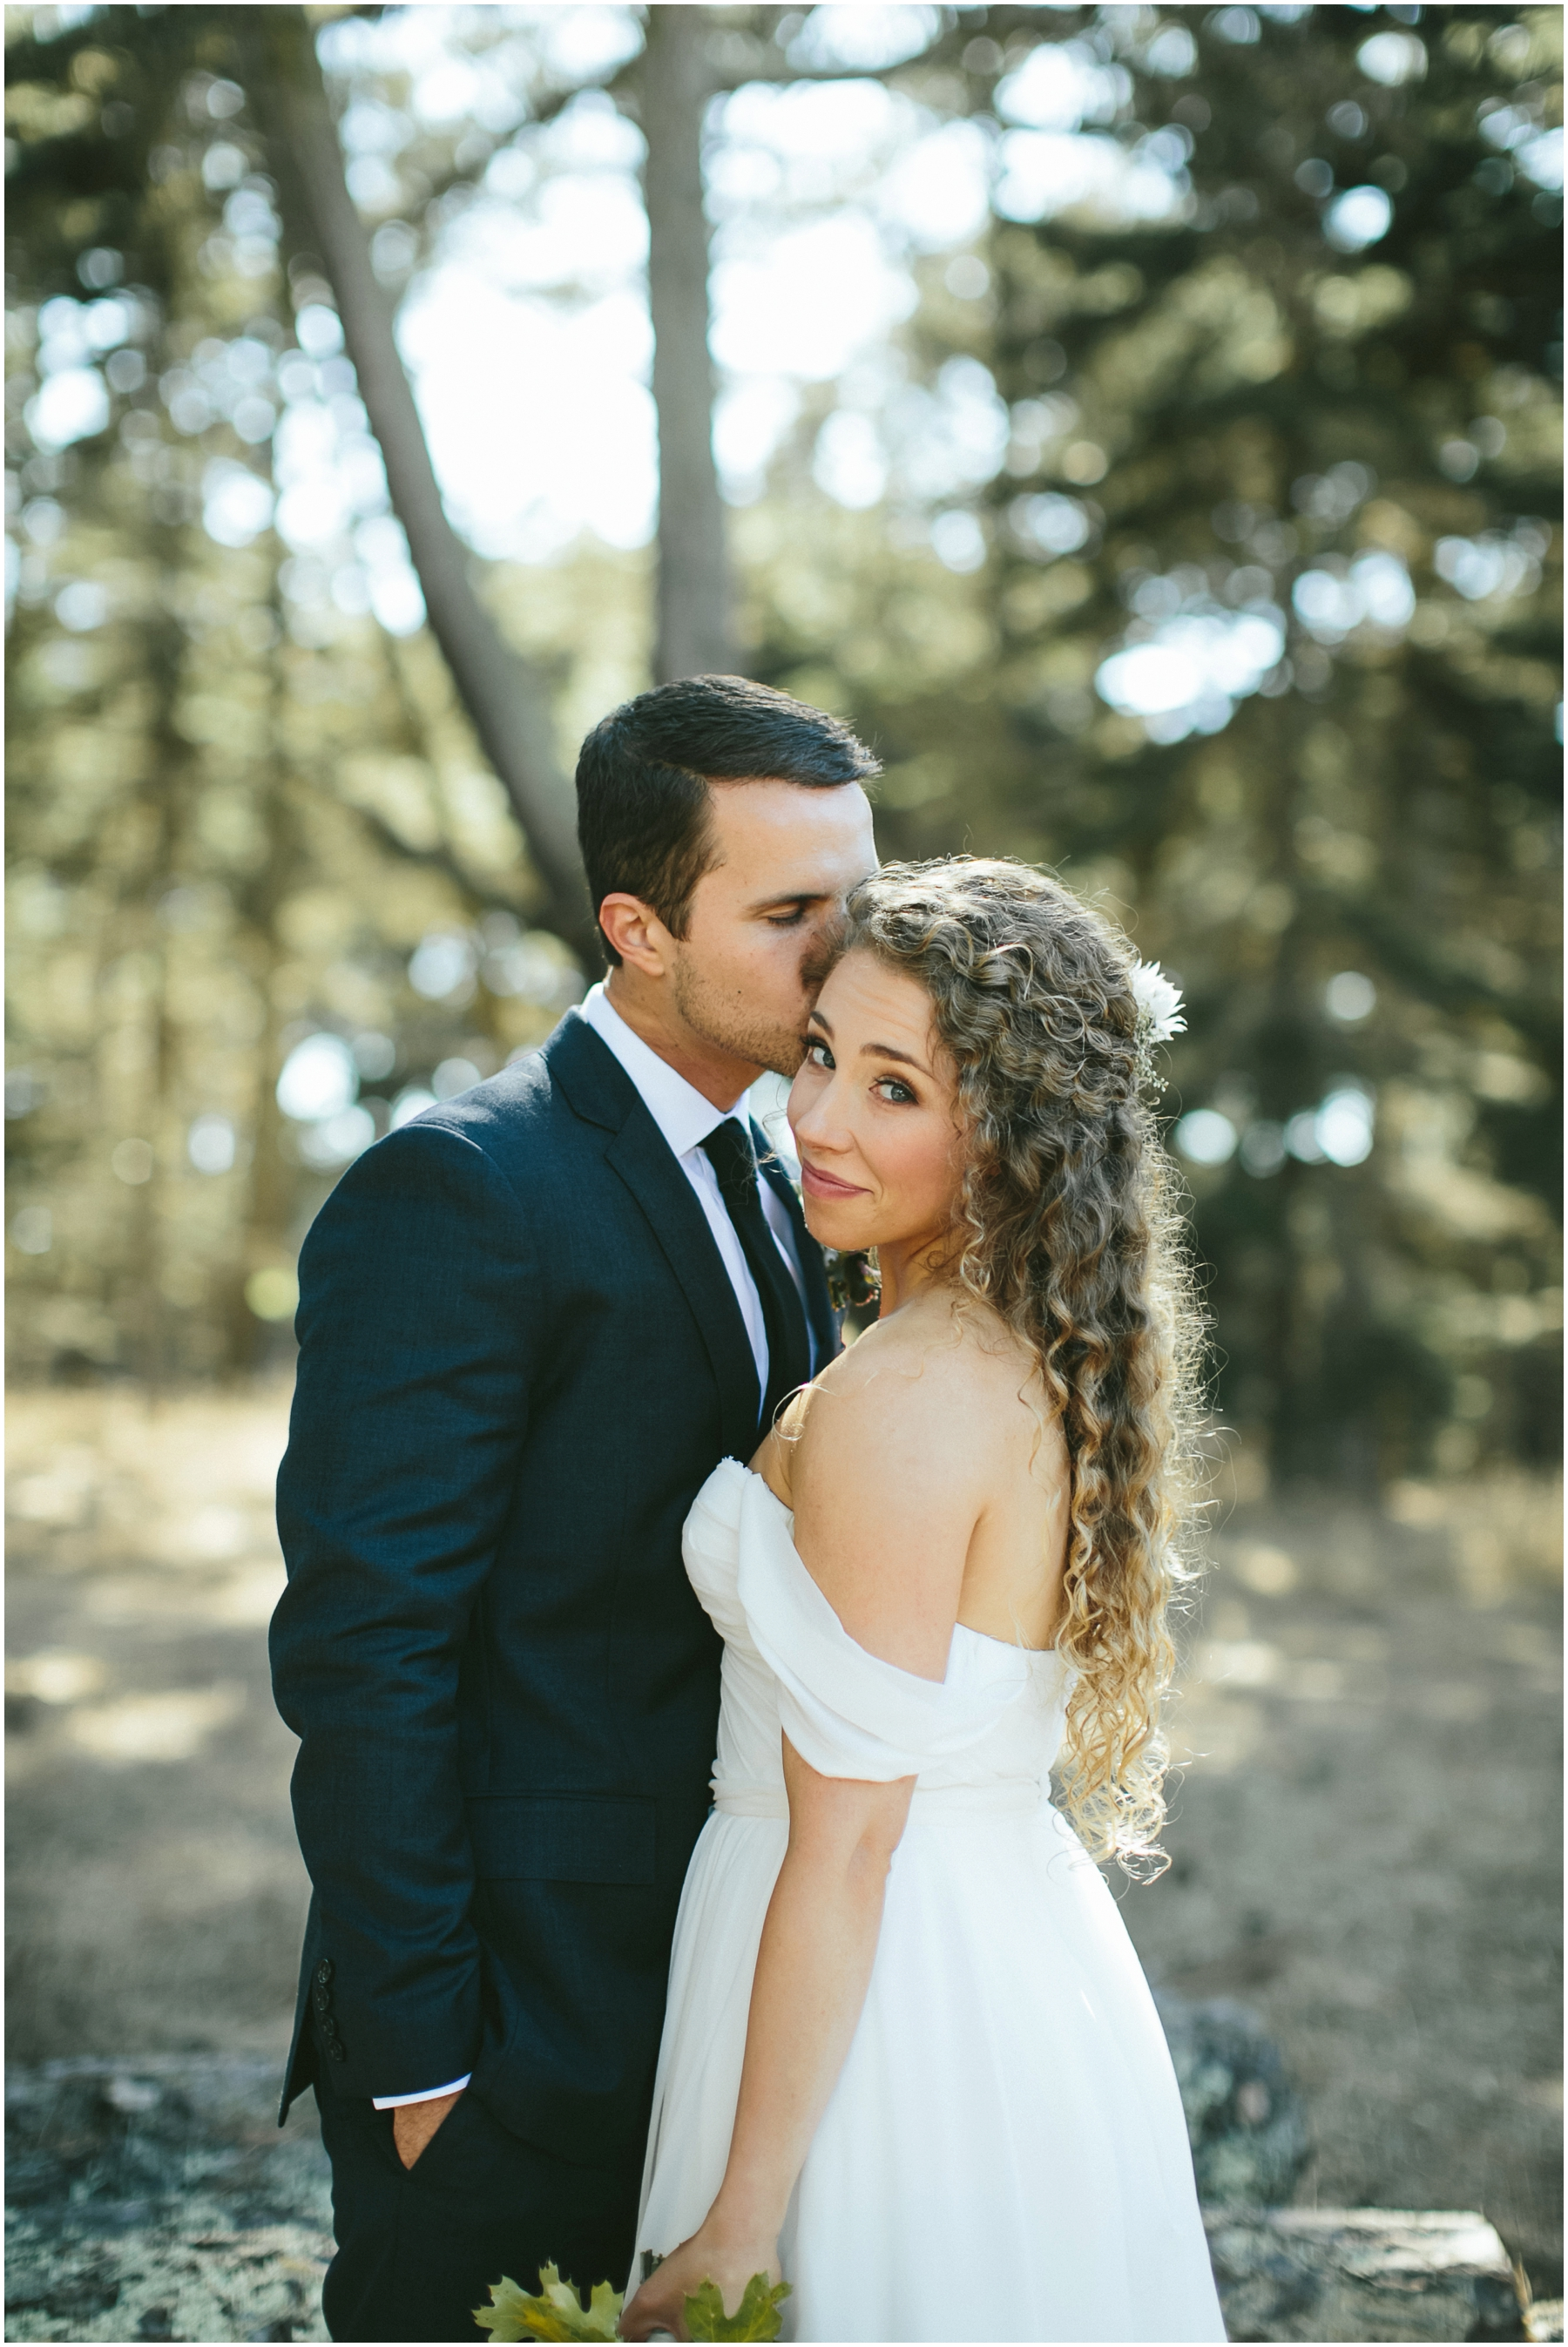 Emily+Paul-WEDDING_KellyBoitanoPhotography_0055